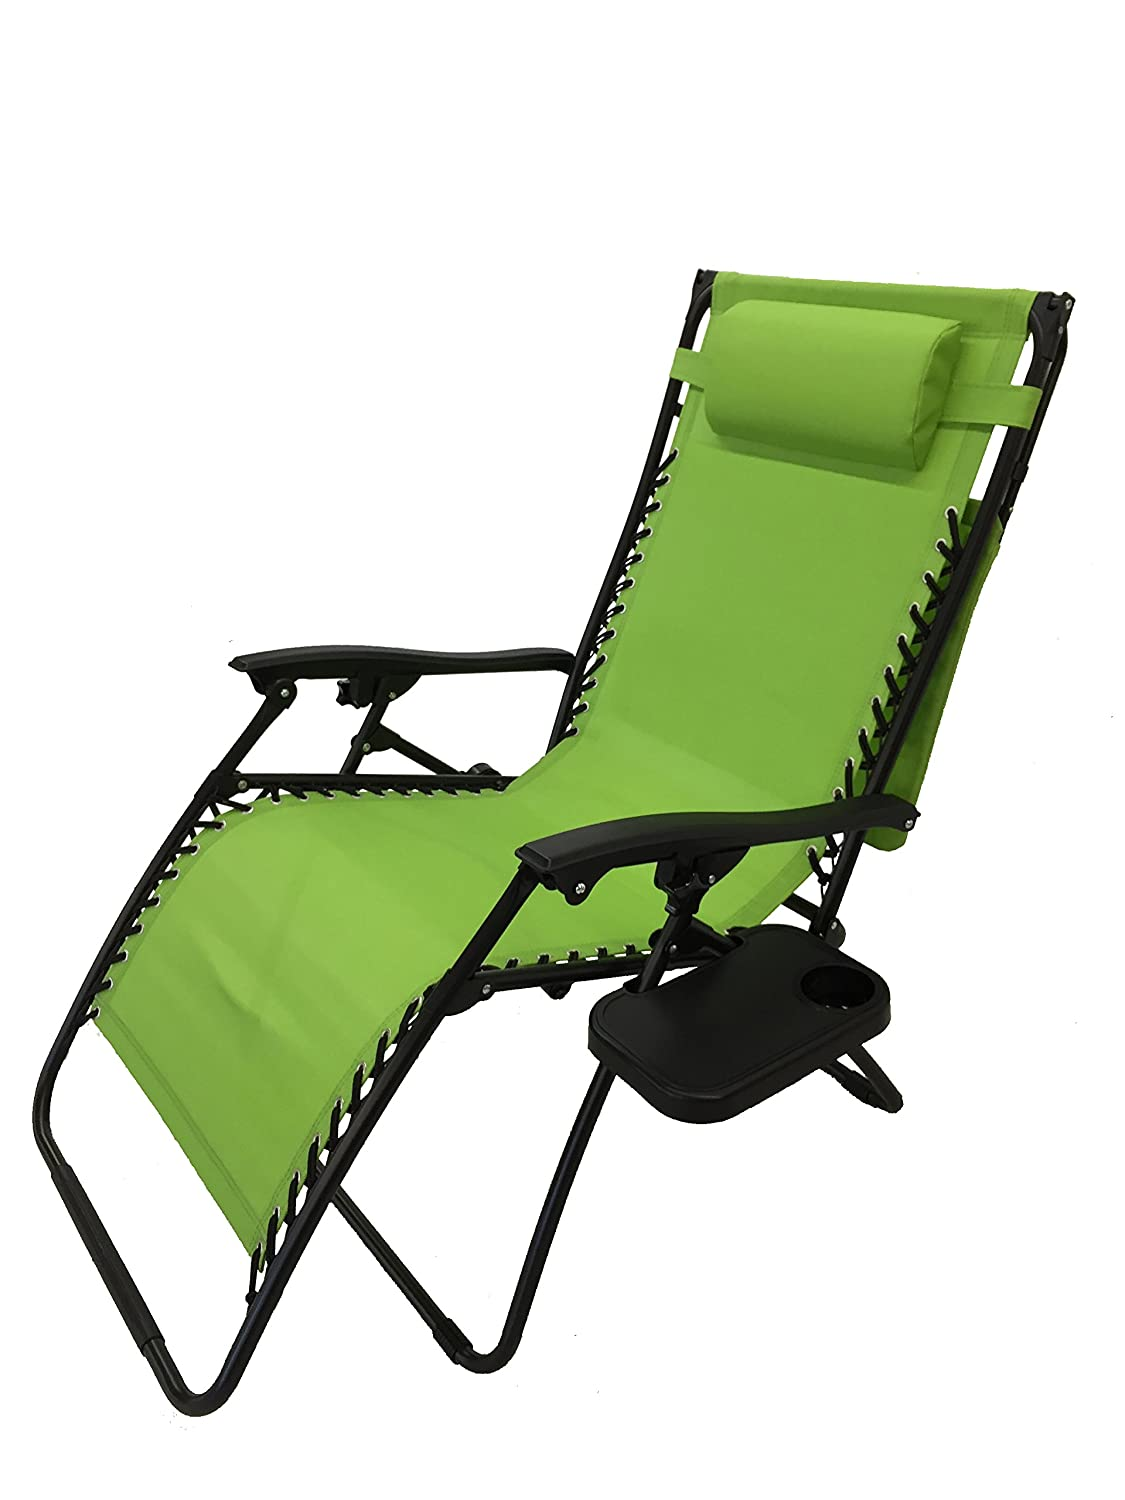 Deluxe Oversized Extra Large Zero Gravity Chair with Canopy Tray – Limon Green